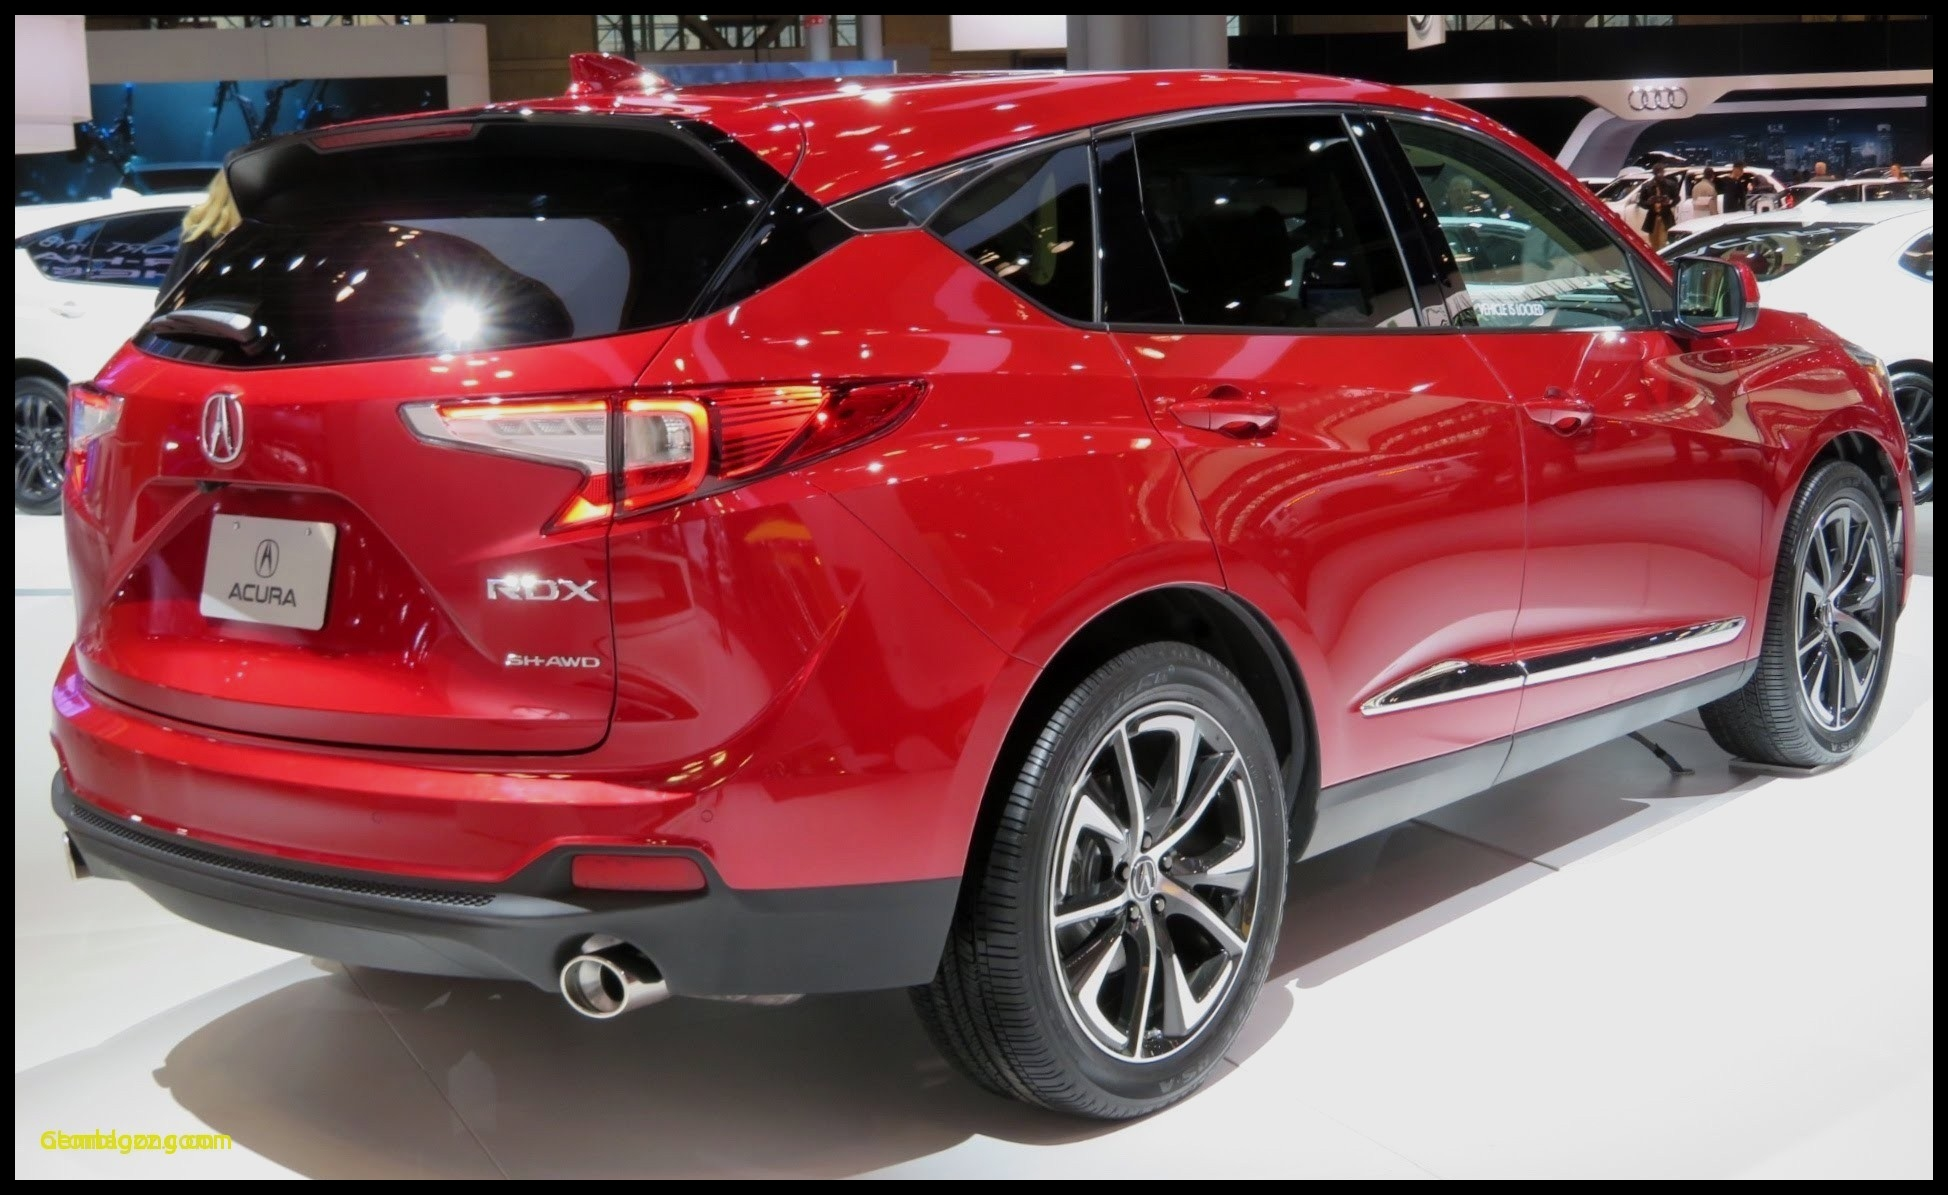 Acura Bellevue Stunning 2019 Acura Acura Tampa Best Bmw X5 3 0d Sport 2008 7 Seater